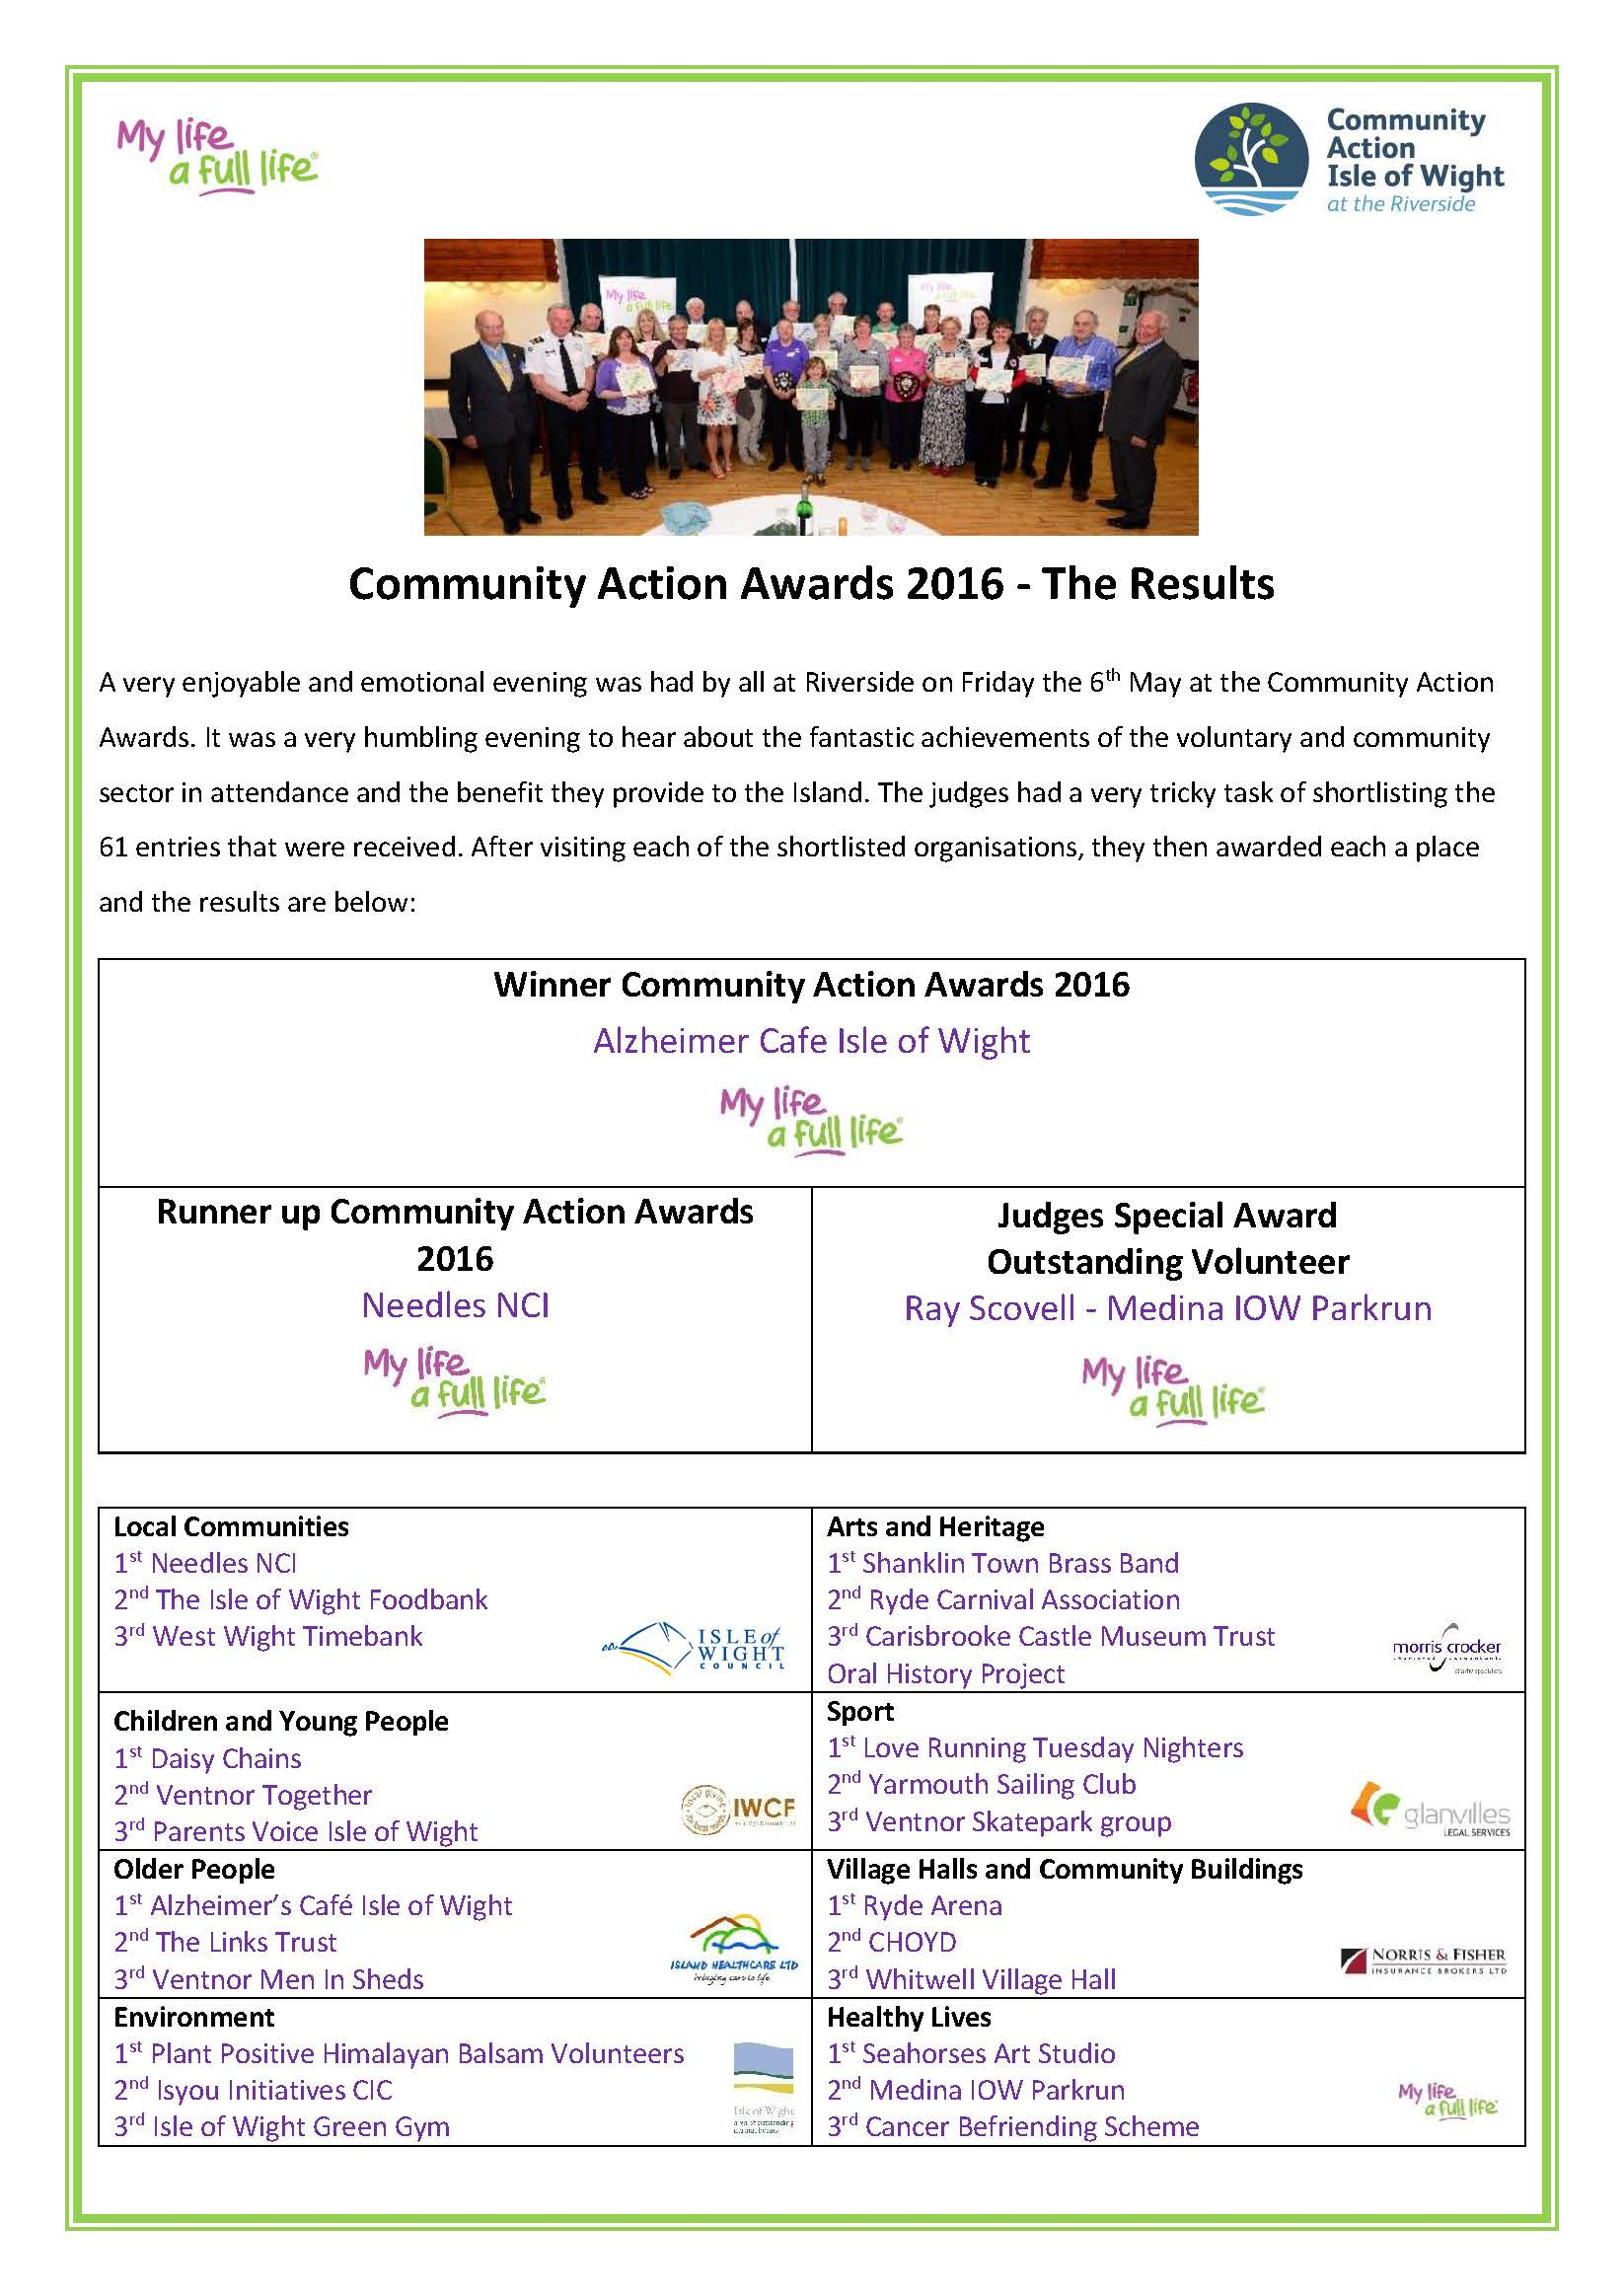 Community Action Awards 2016 write up